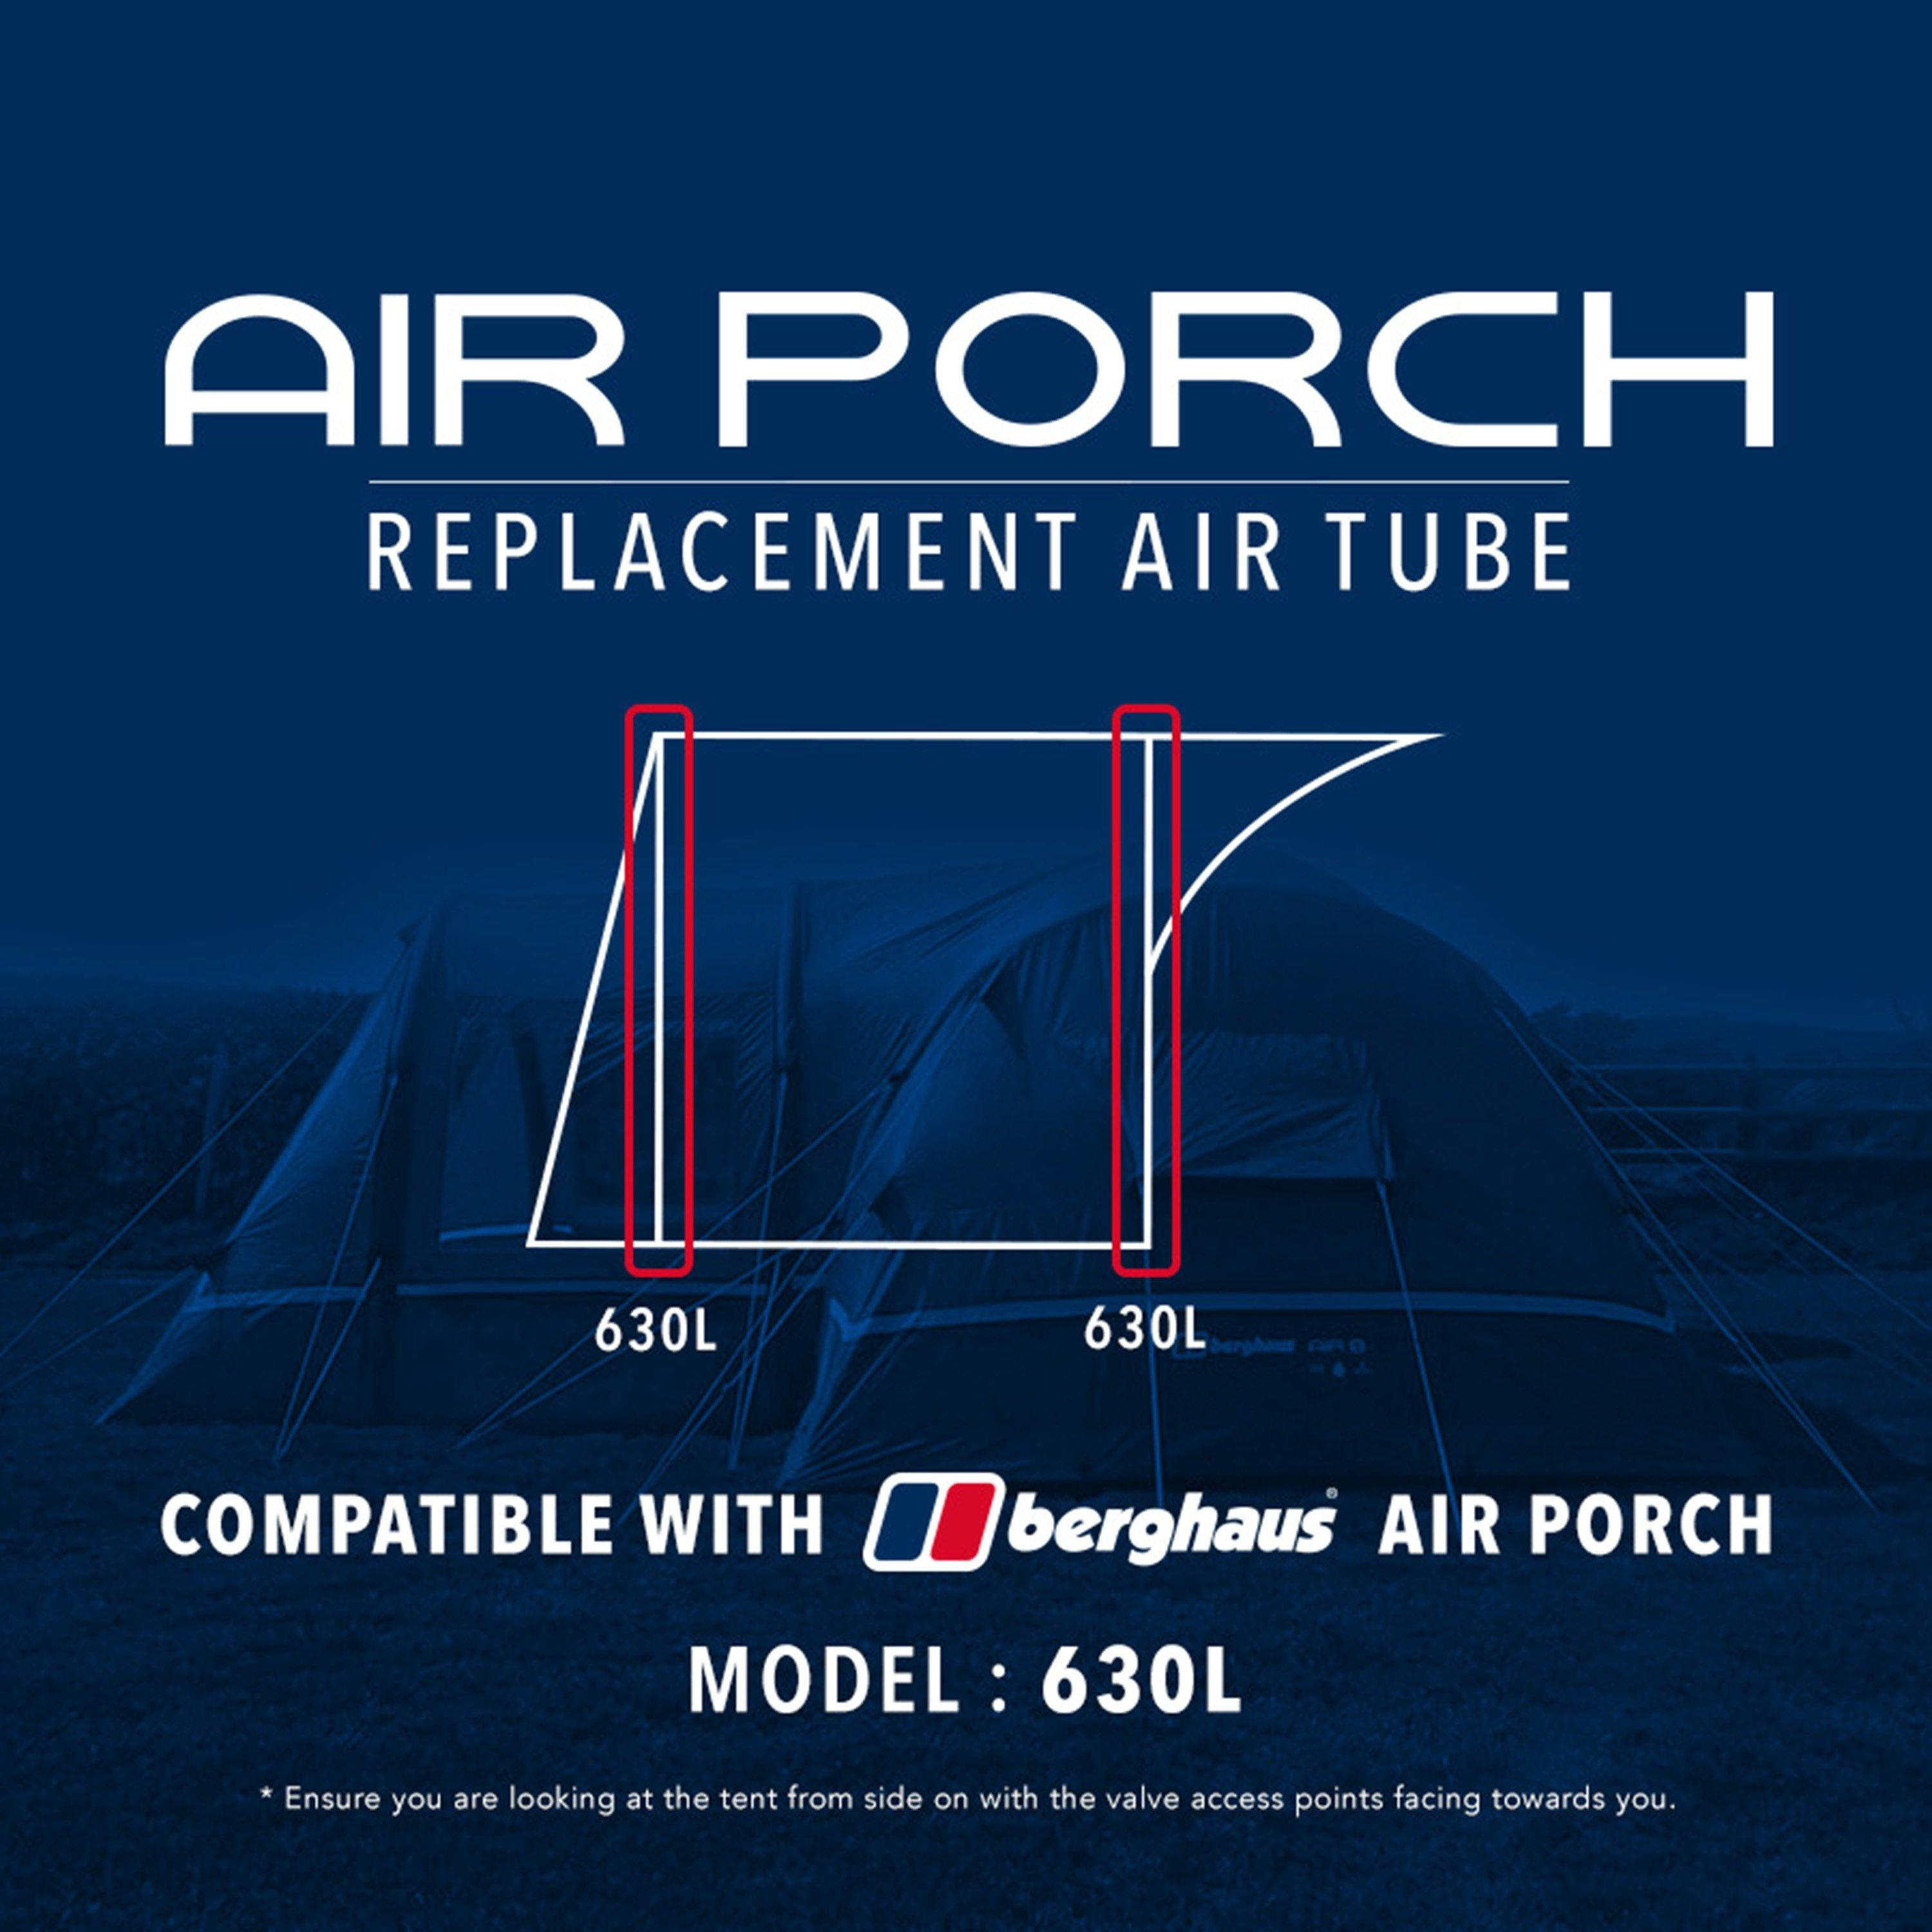 Berghaus Air Porch Replacement Air Tubes